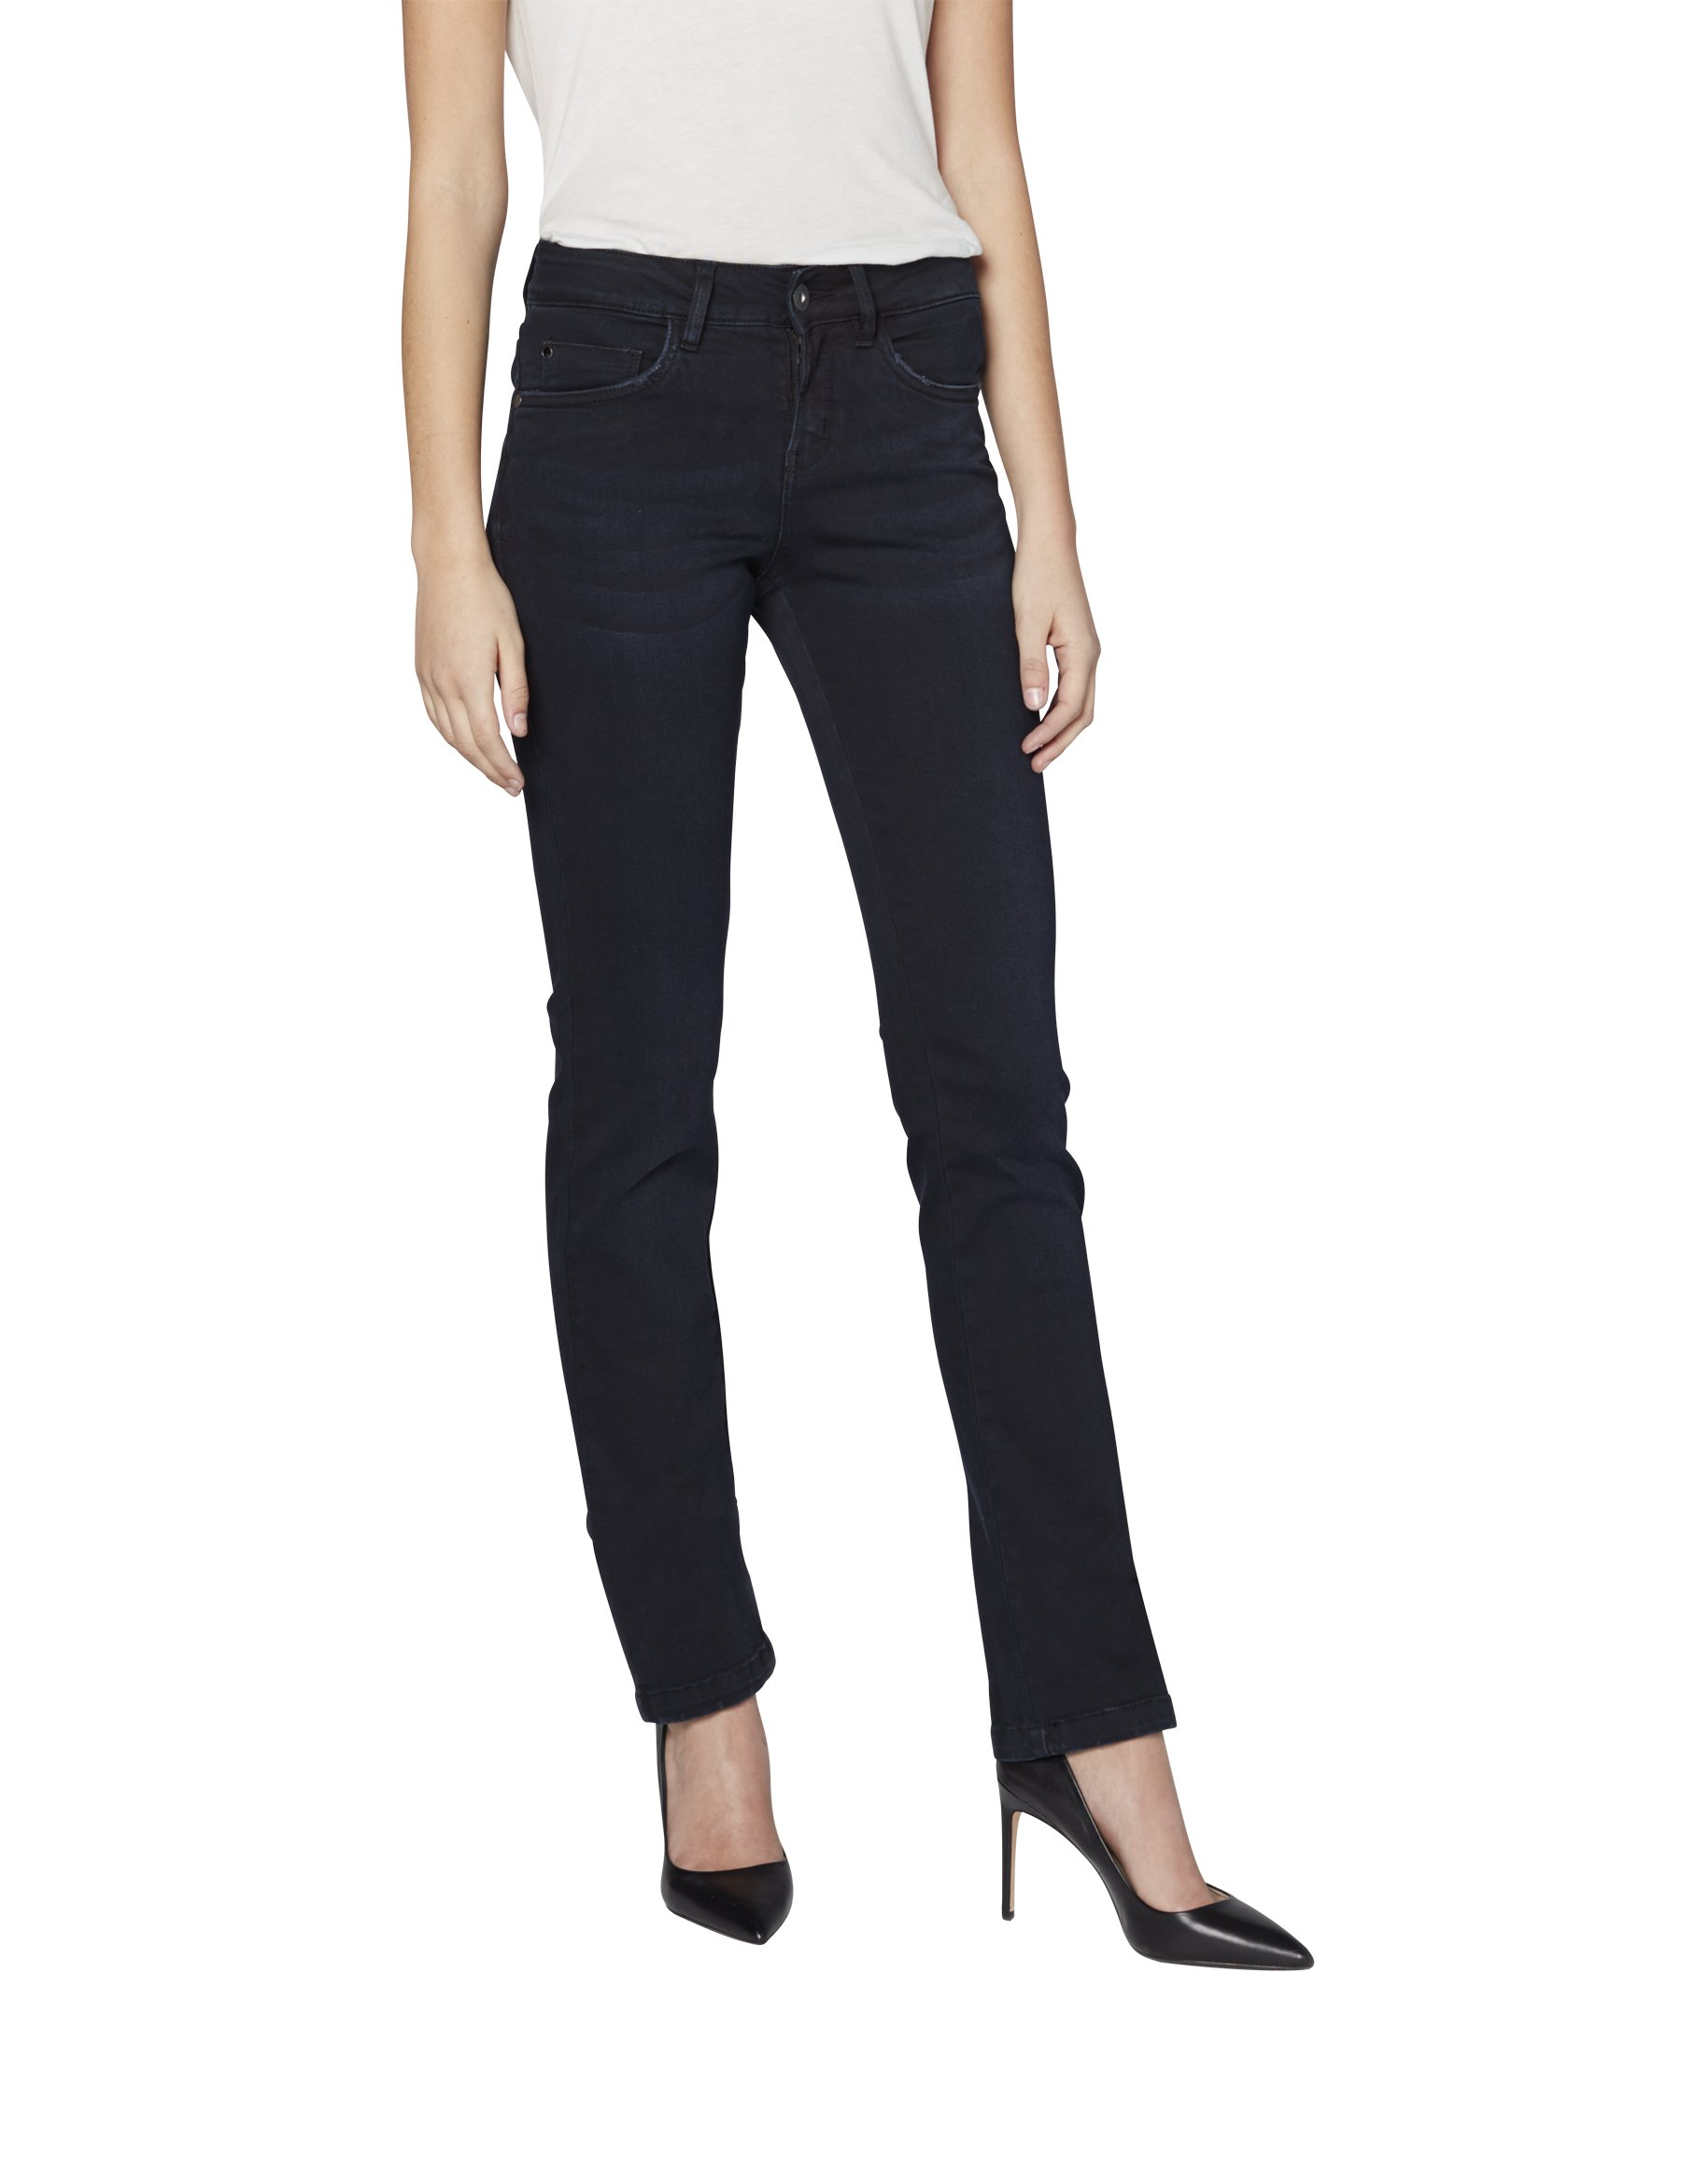 Comfort Colorado X Layla 30l Damen 83628w Night C959 Fit JeansNoirblack Denim Slim Femme BoxrdCe